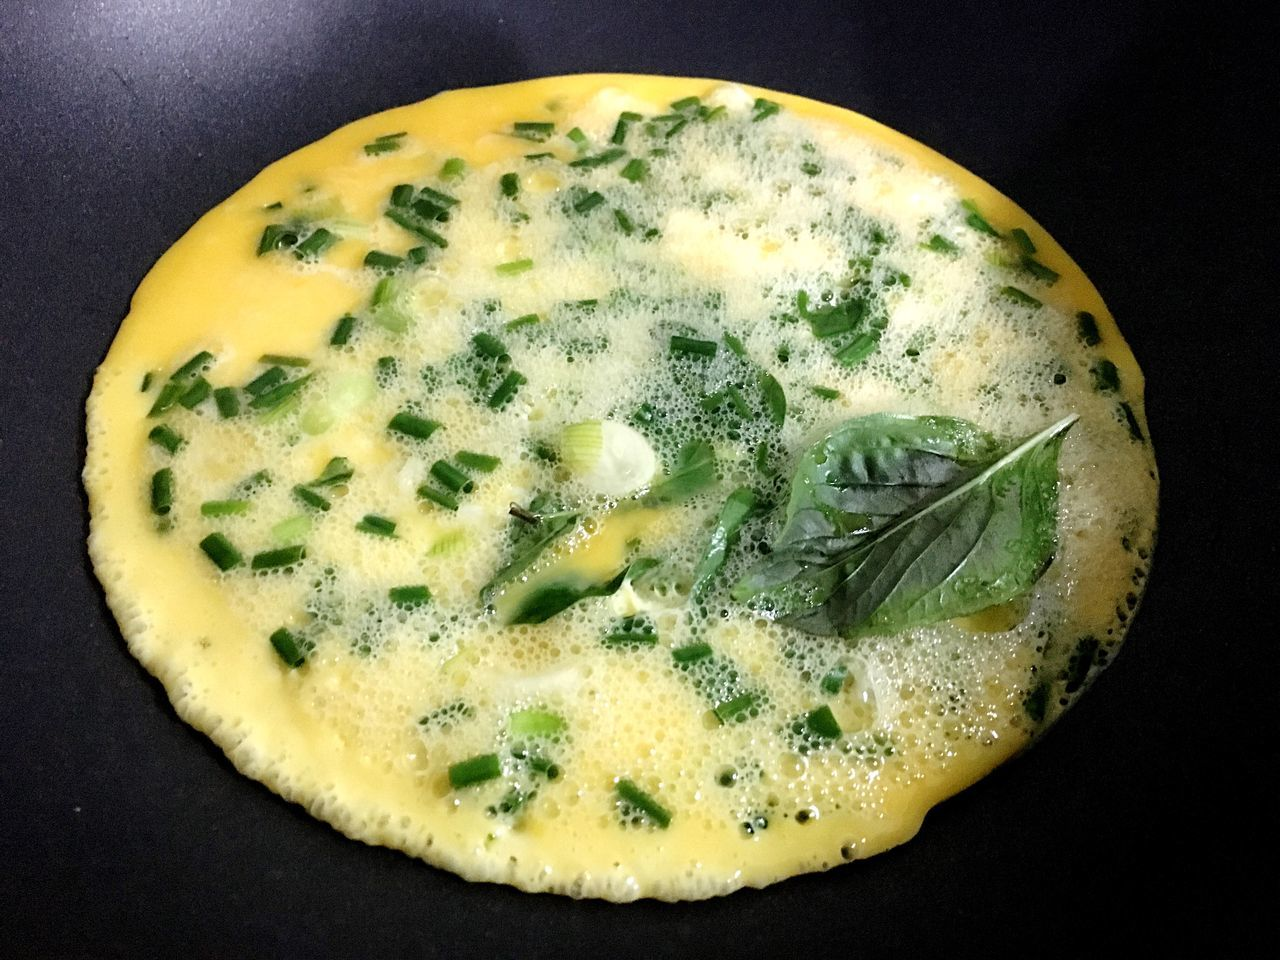 Omlet Yellow Moon Basil Mydinner 😁